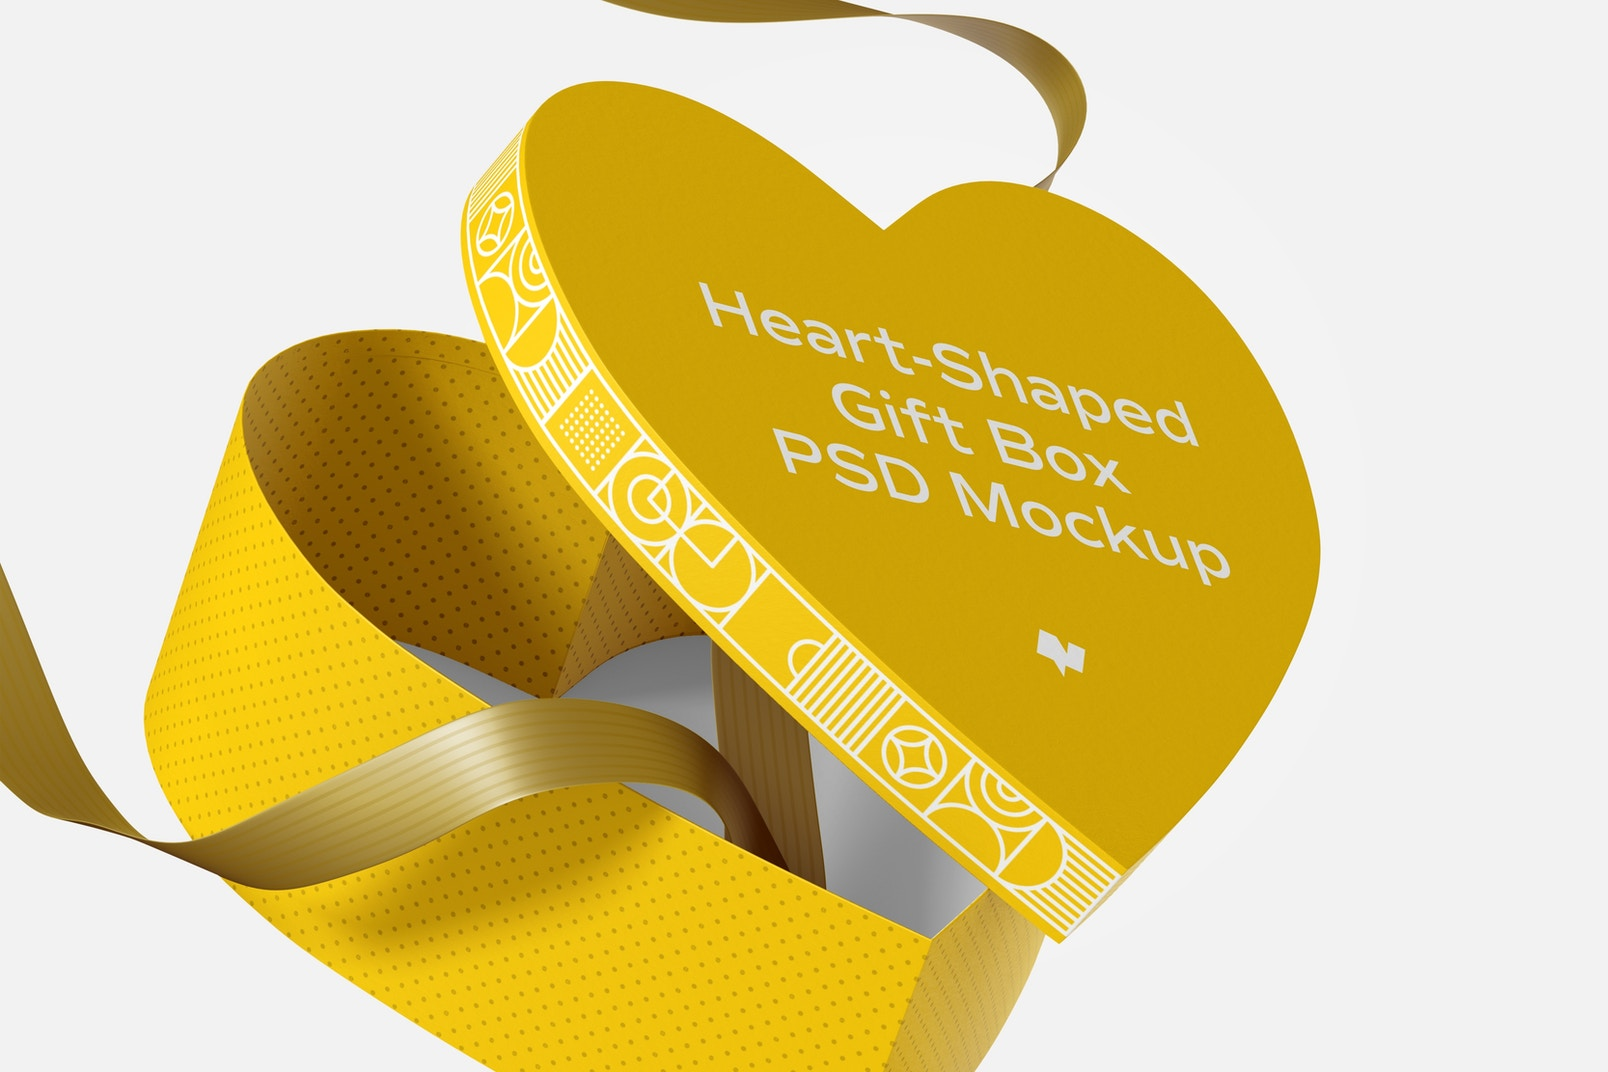 Heart-Shaped Gift Box With Paper Ribbon Mockup, Floating